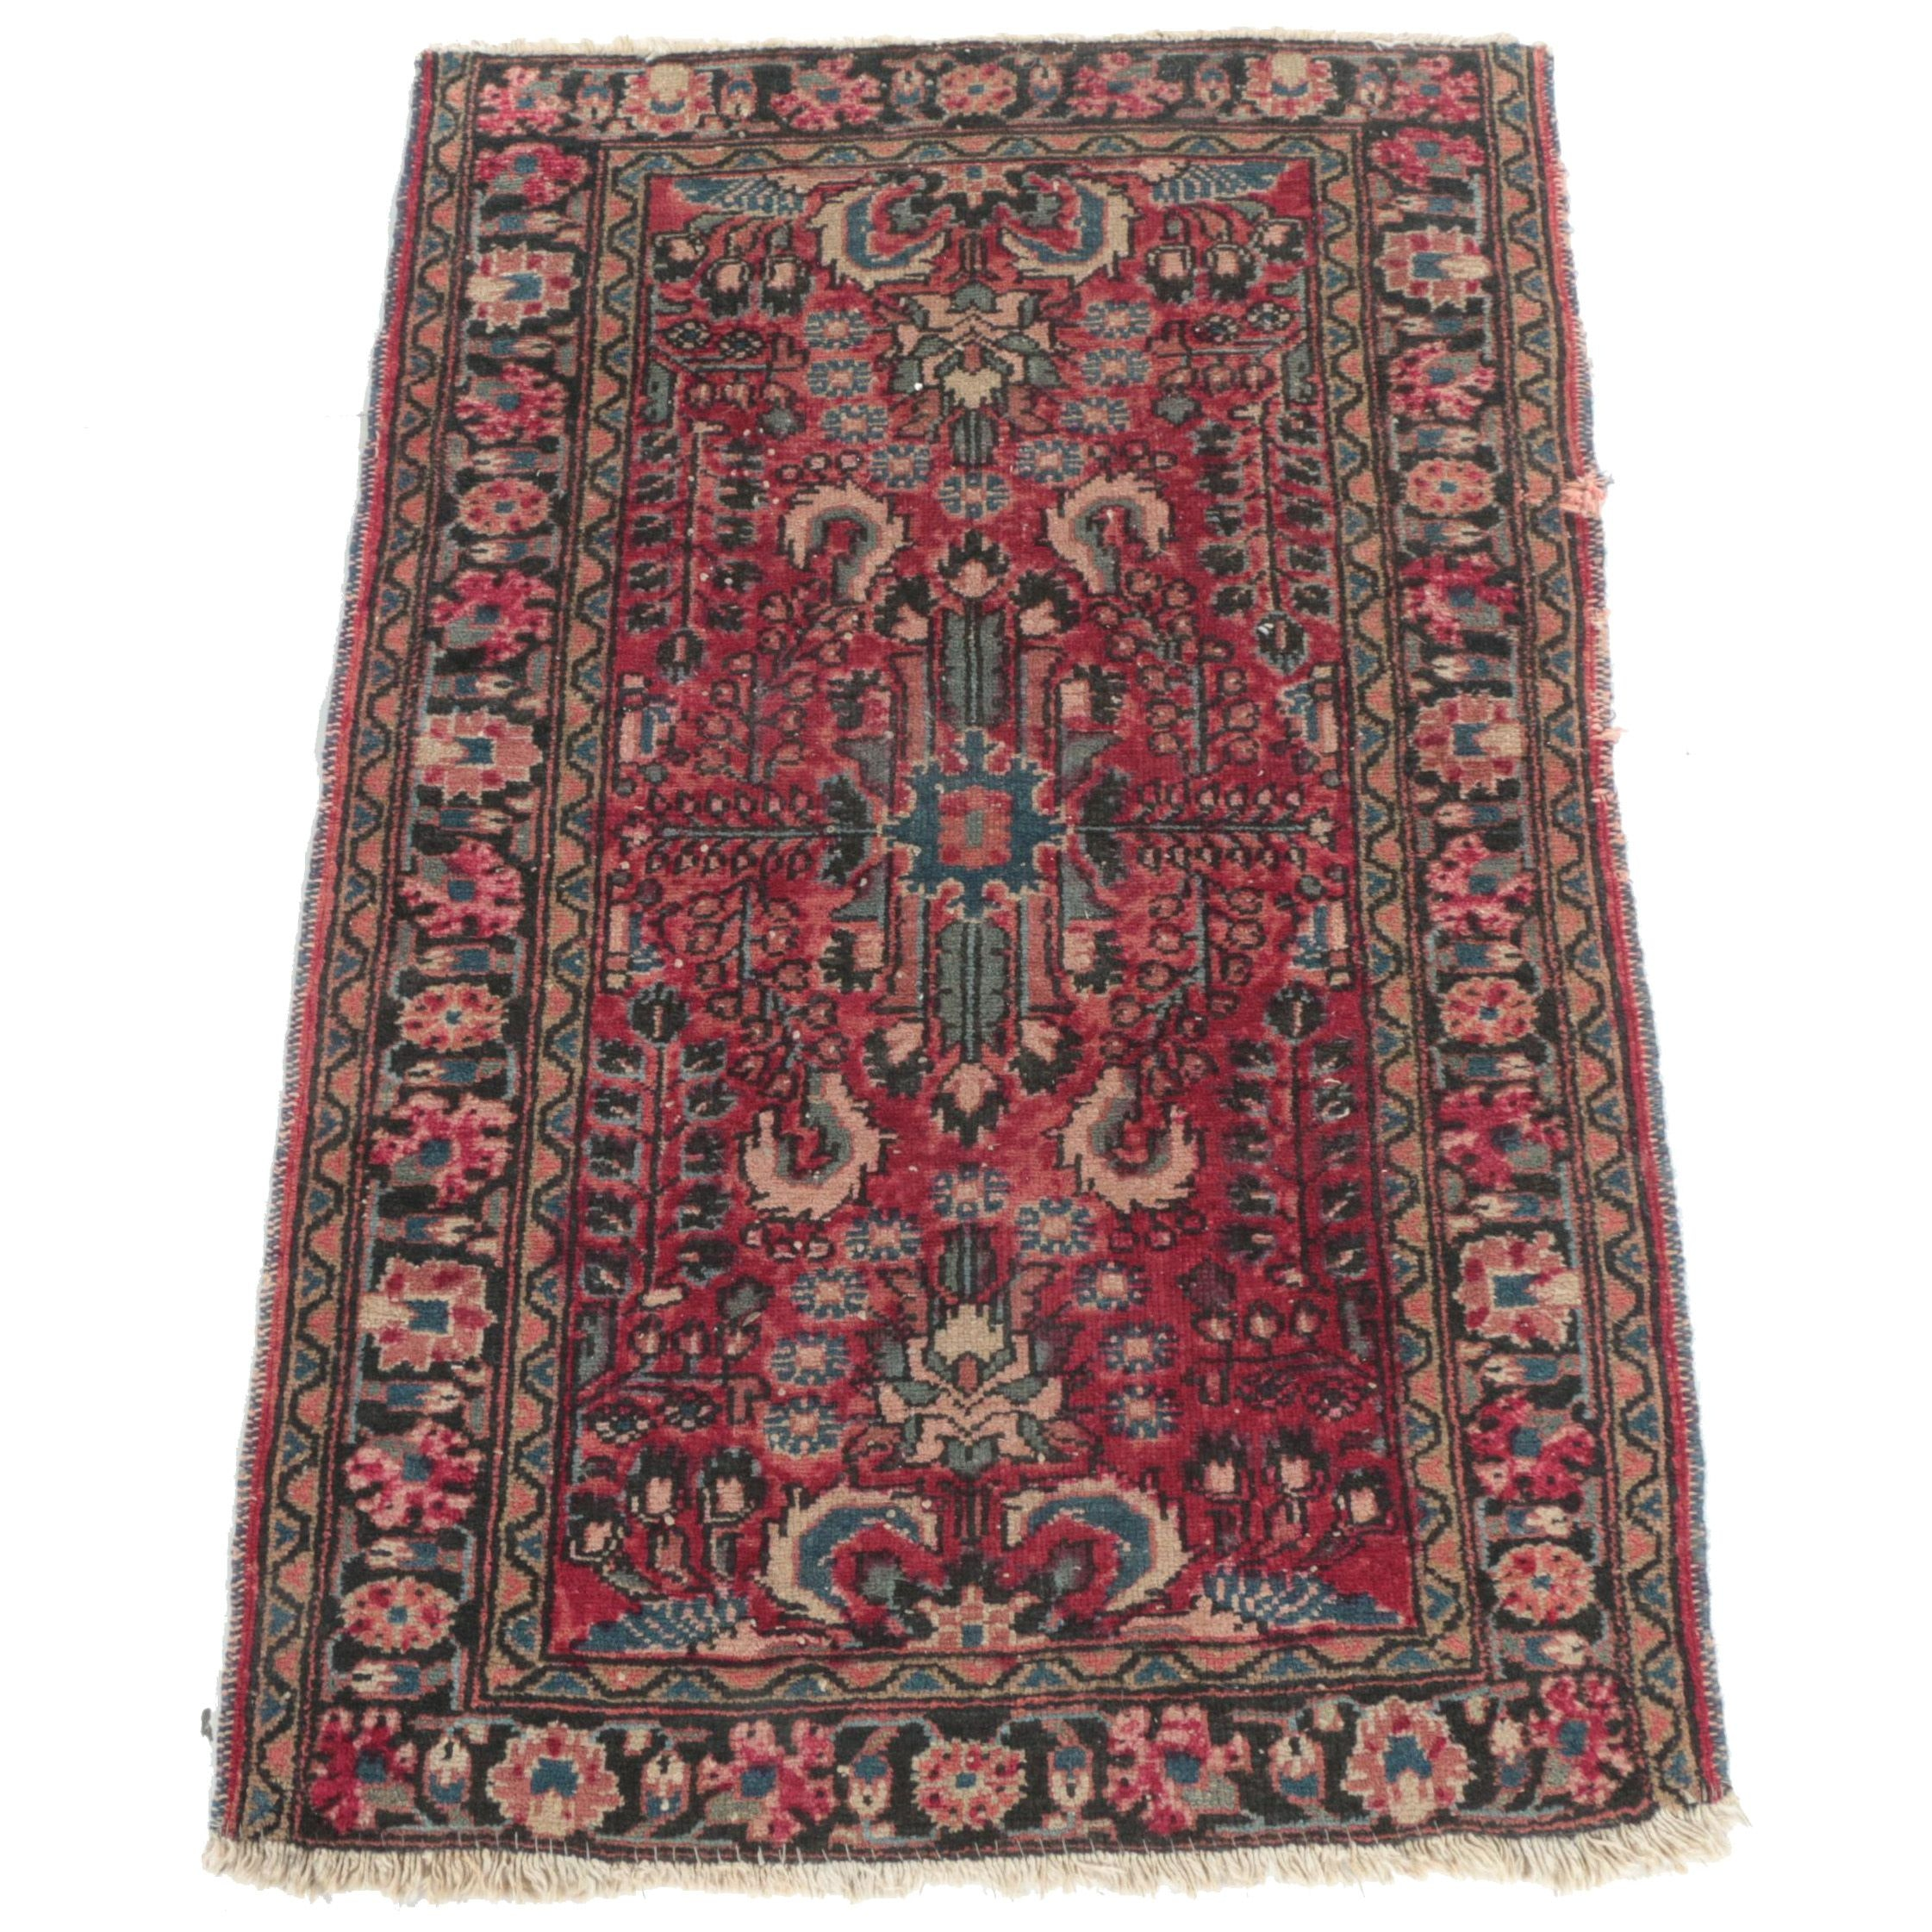 Semi-Antique Hand-Knotted Persian Mehriban Accent Rug